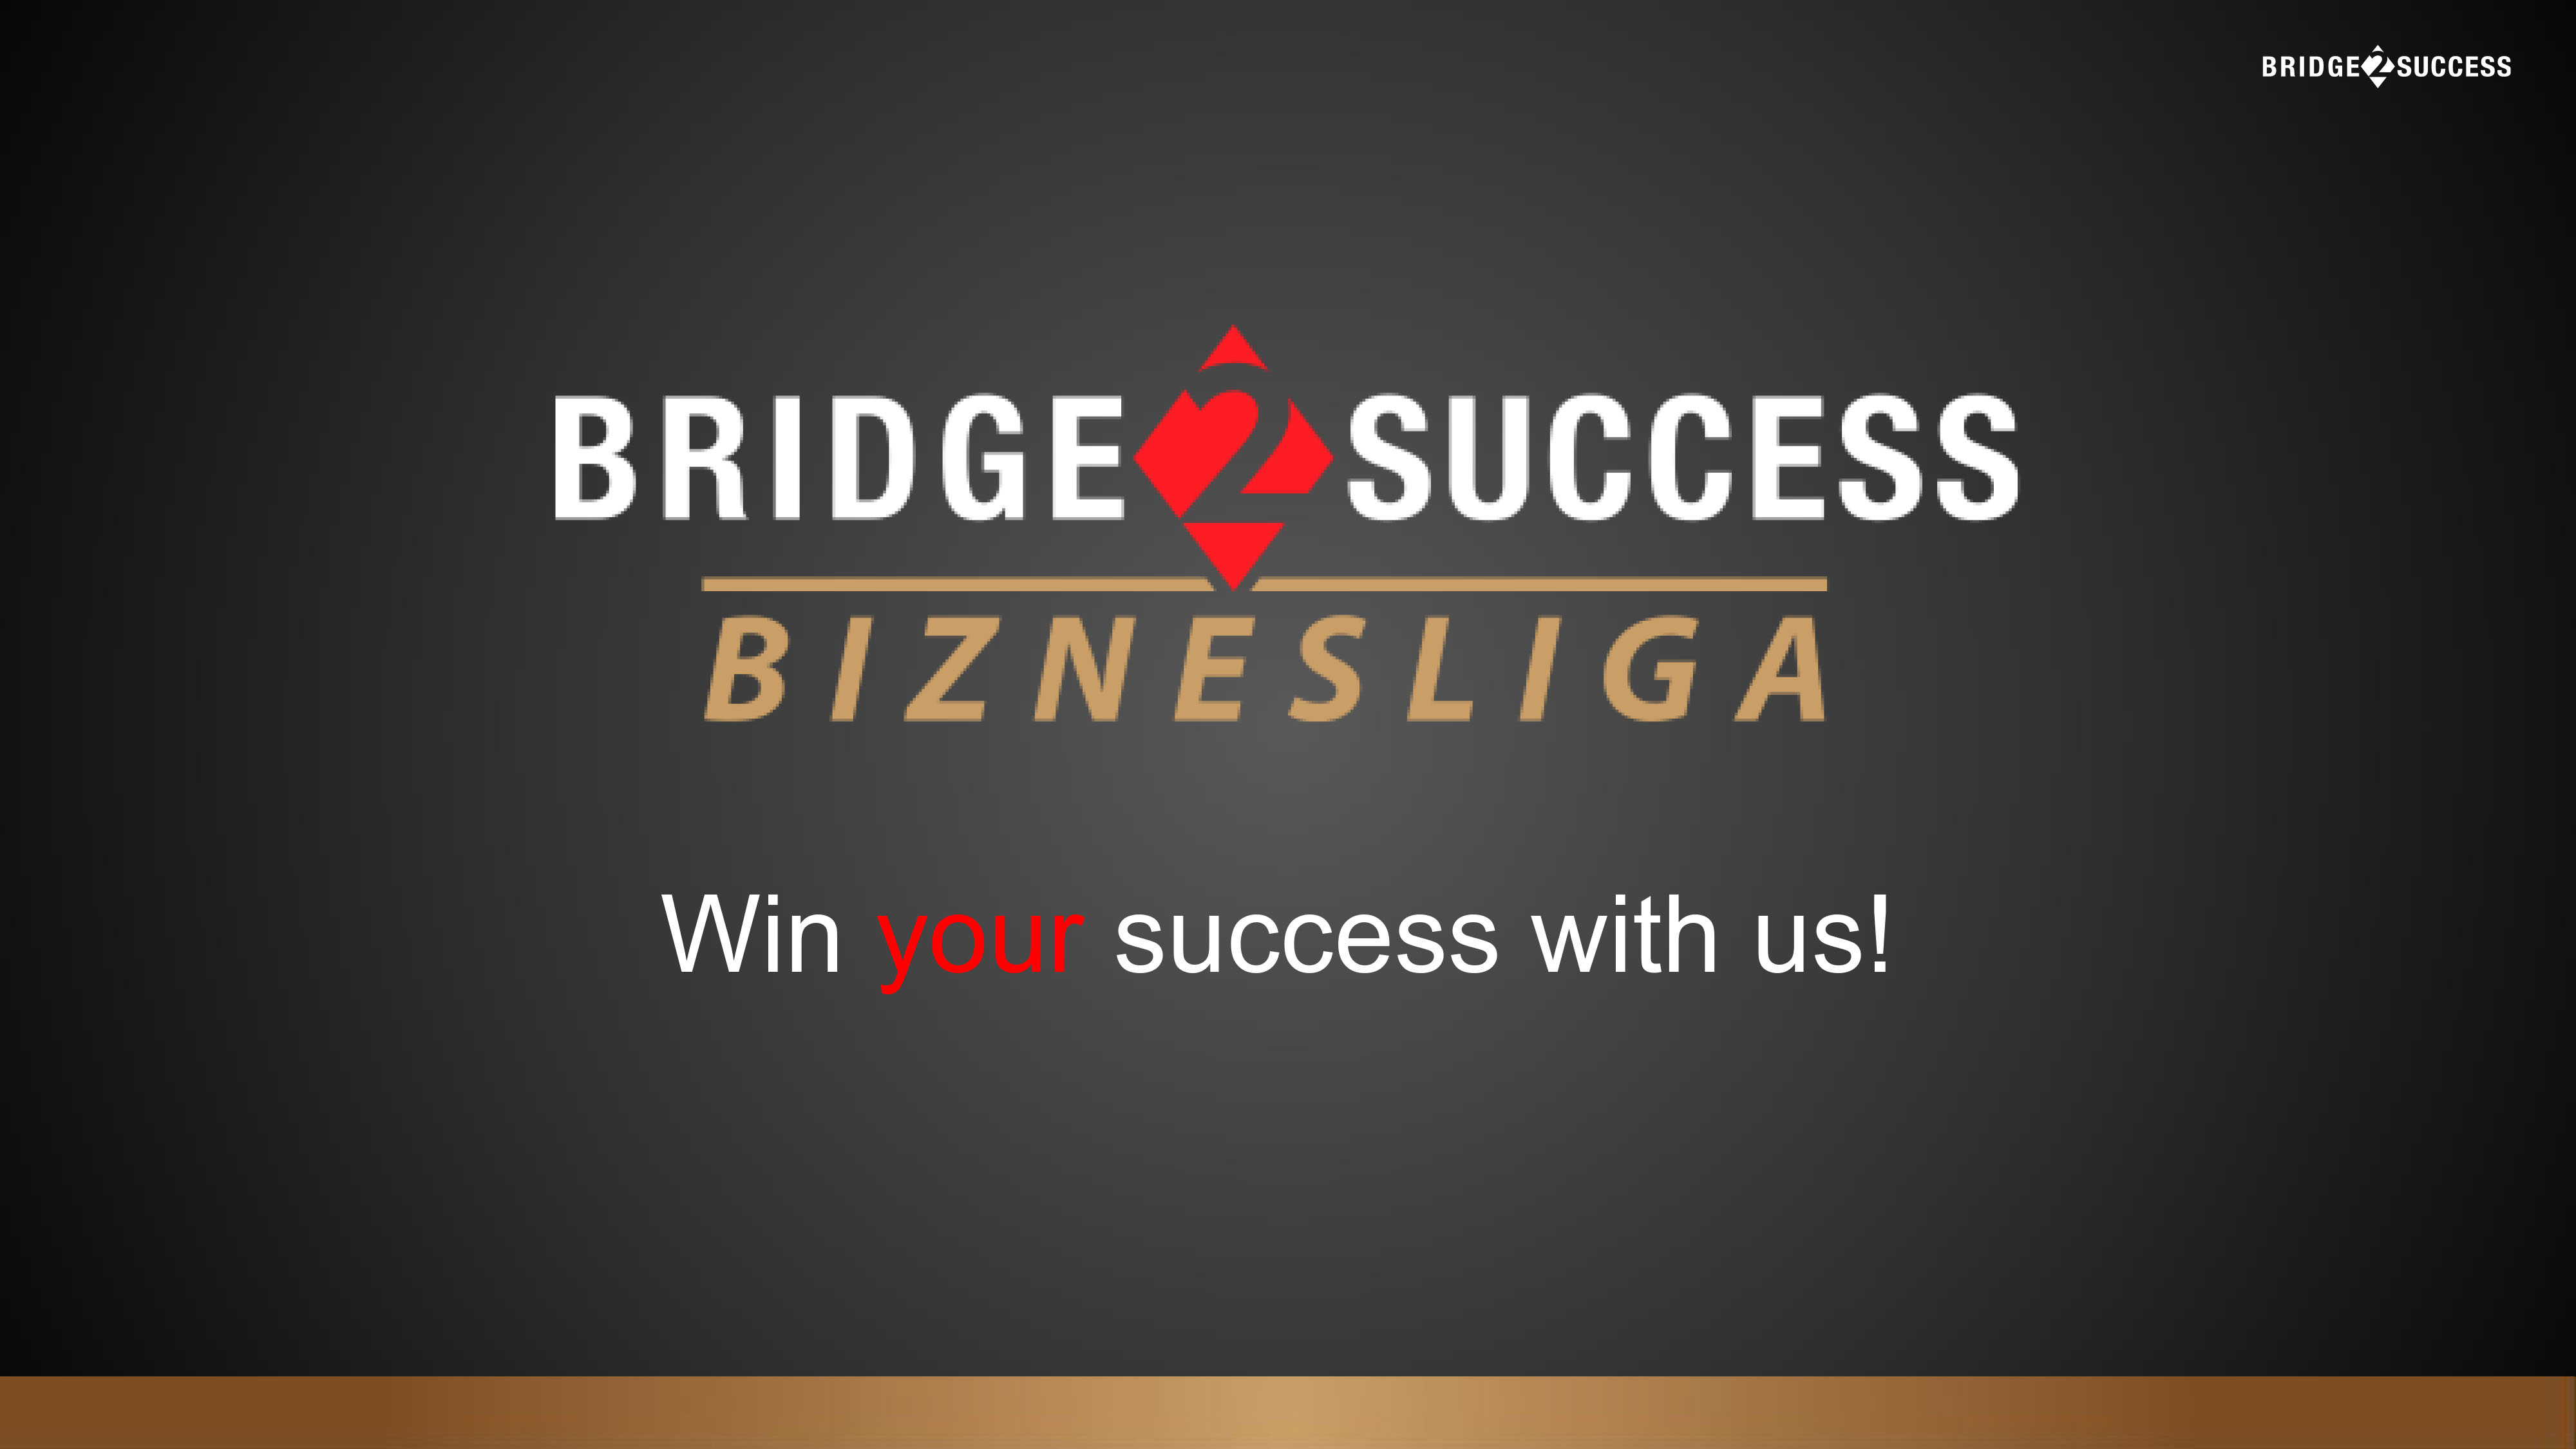 Bridge2Success Biznesliga - Win your success with us!